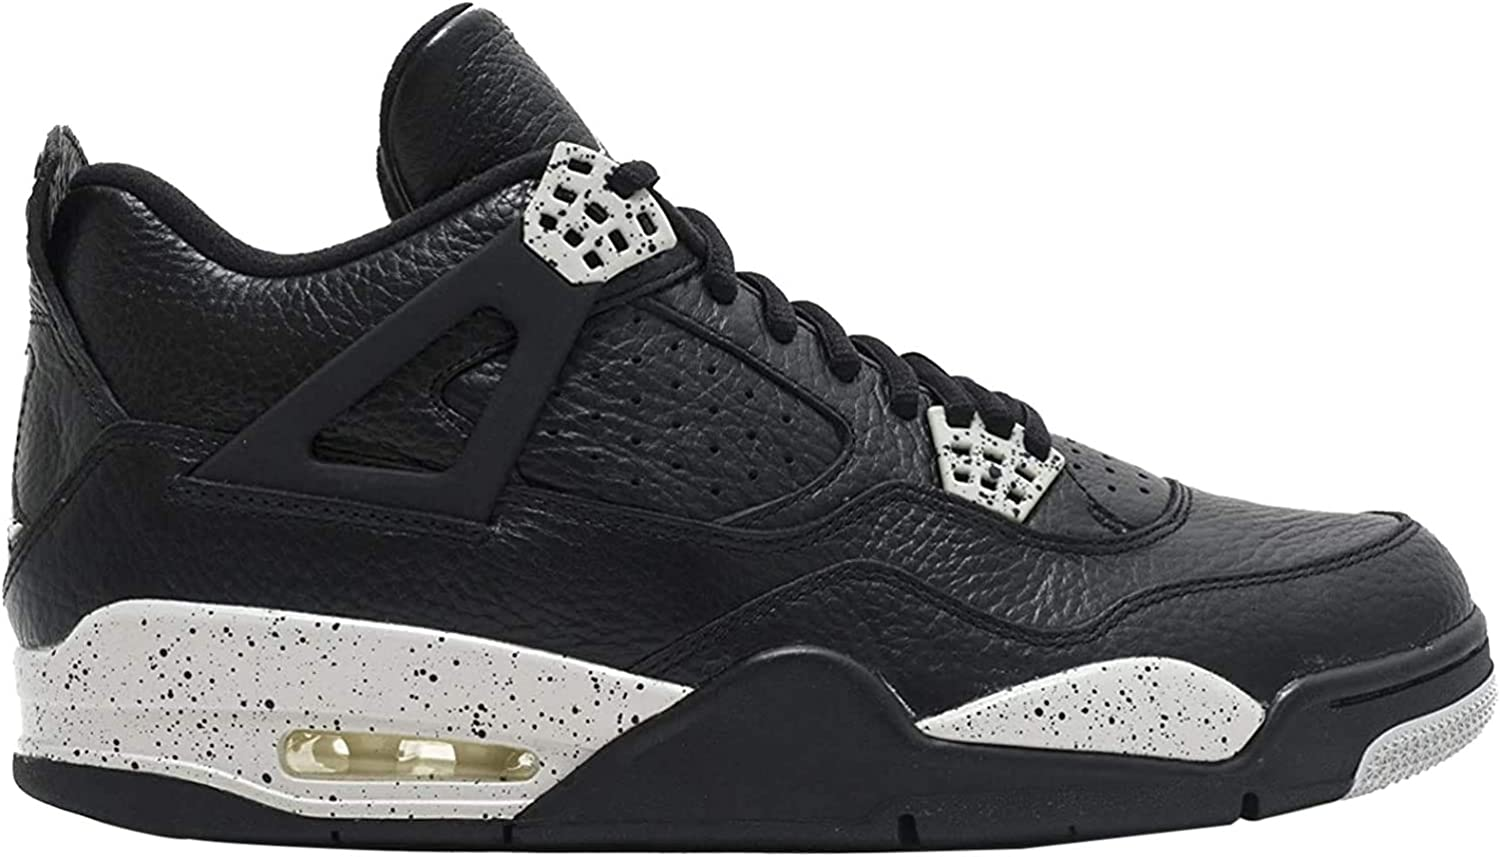 Air Jordan 4 Retro LS 314254 003